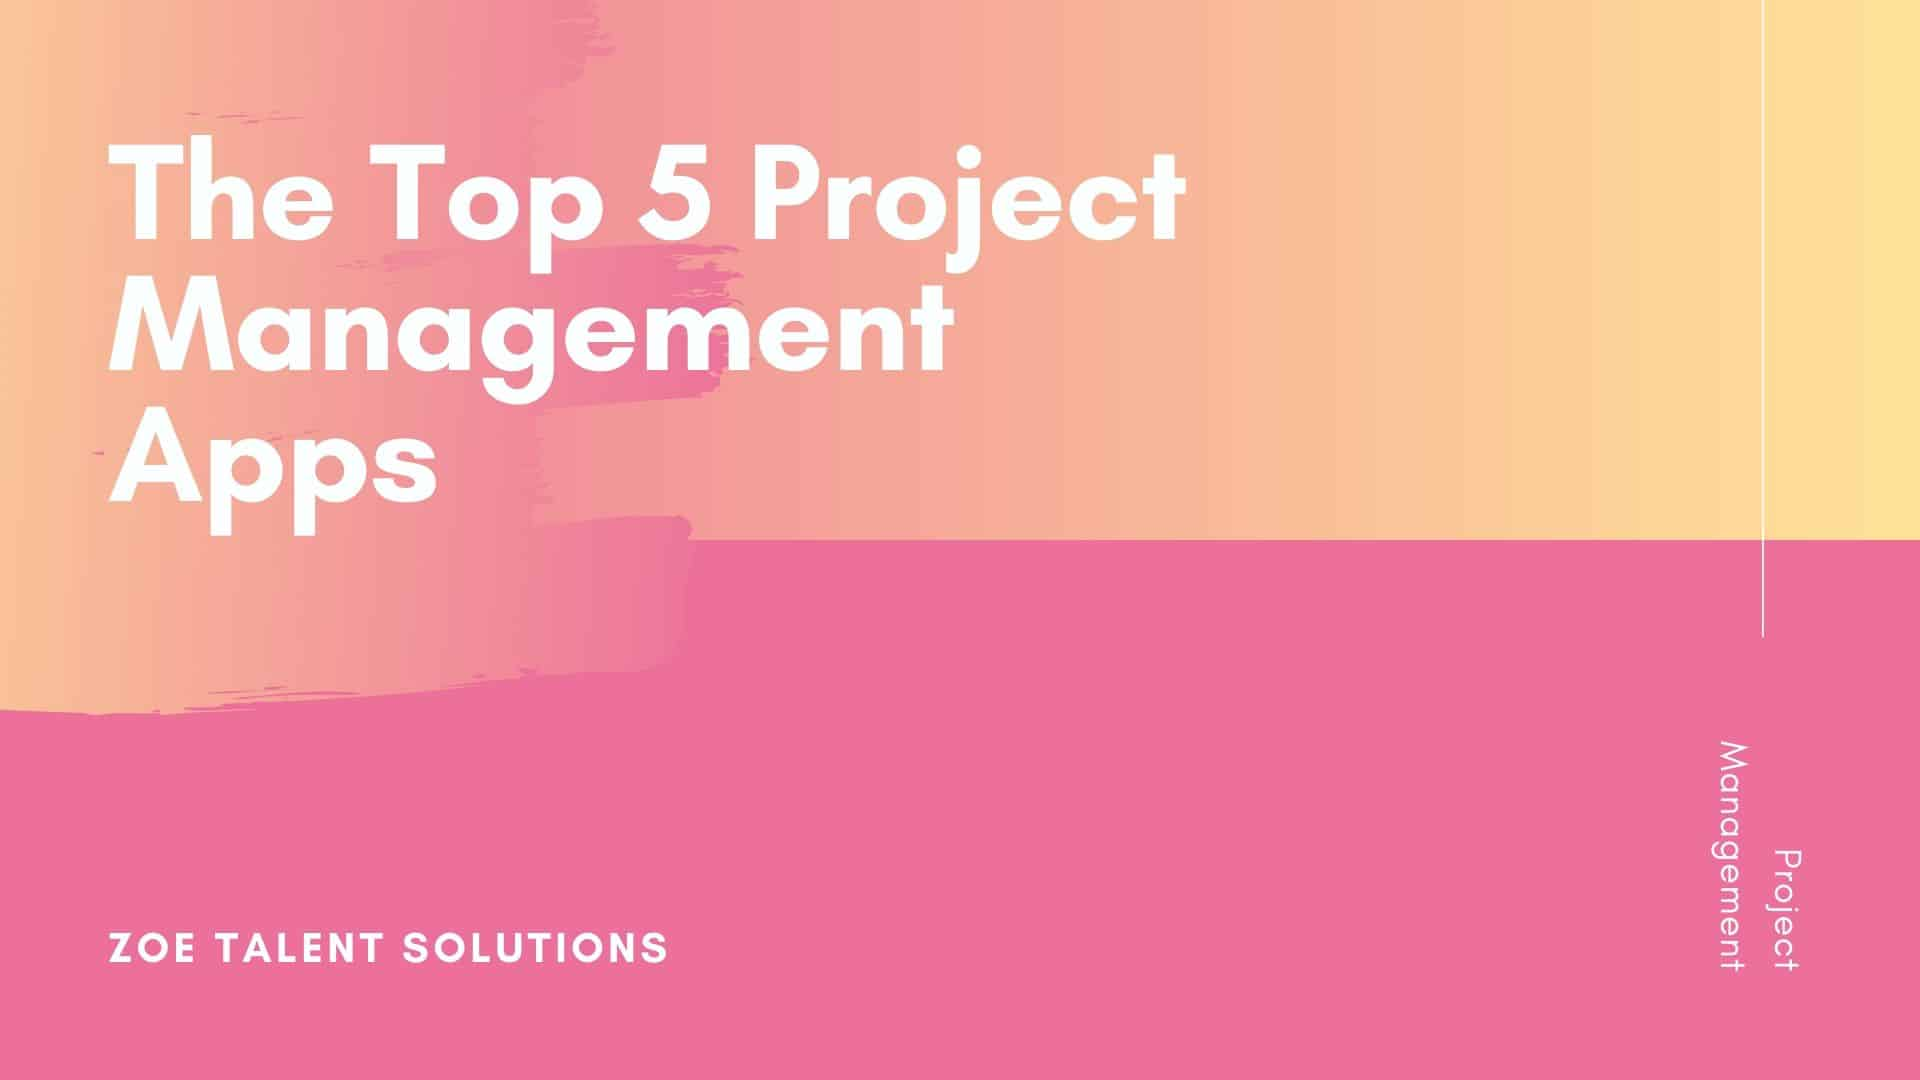 The Top 5 Project Management Apps